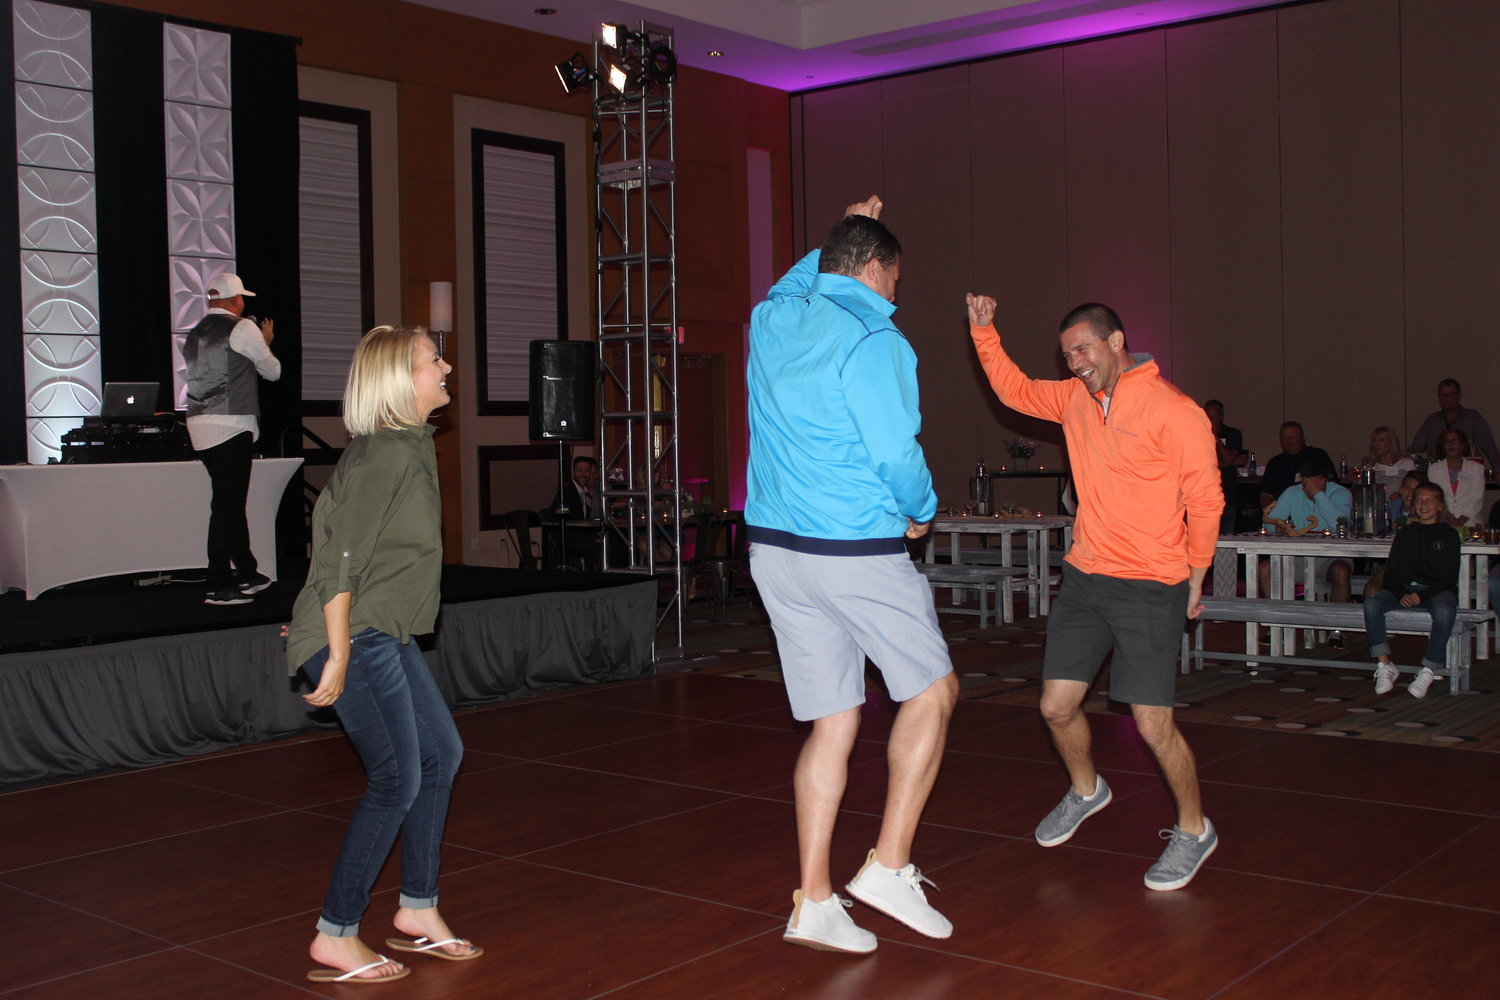 Guests have fun dancing at the event.